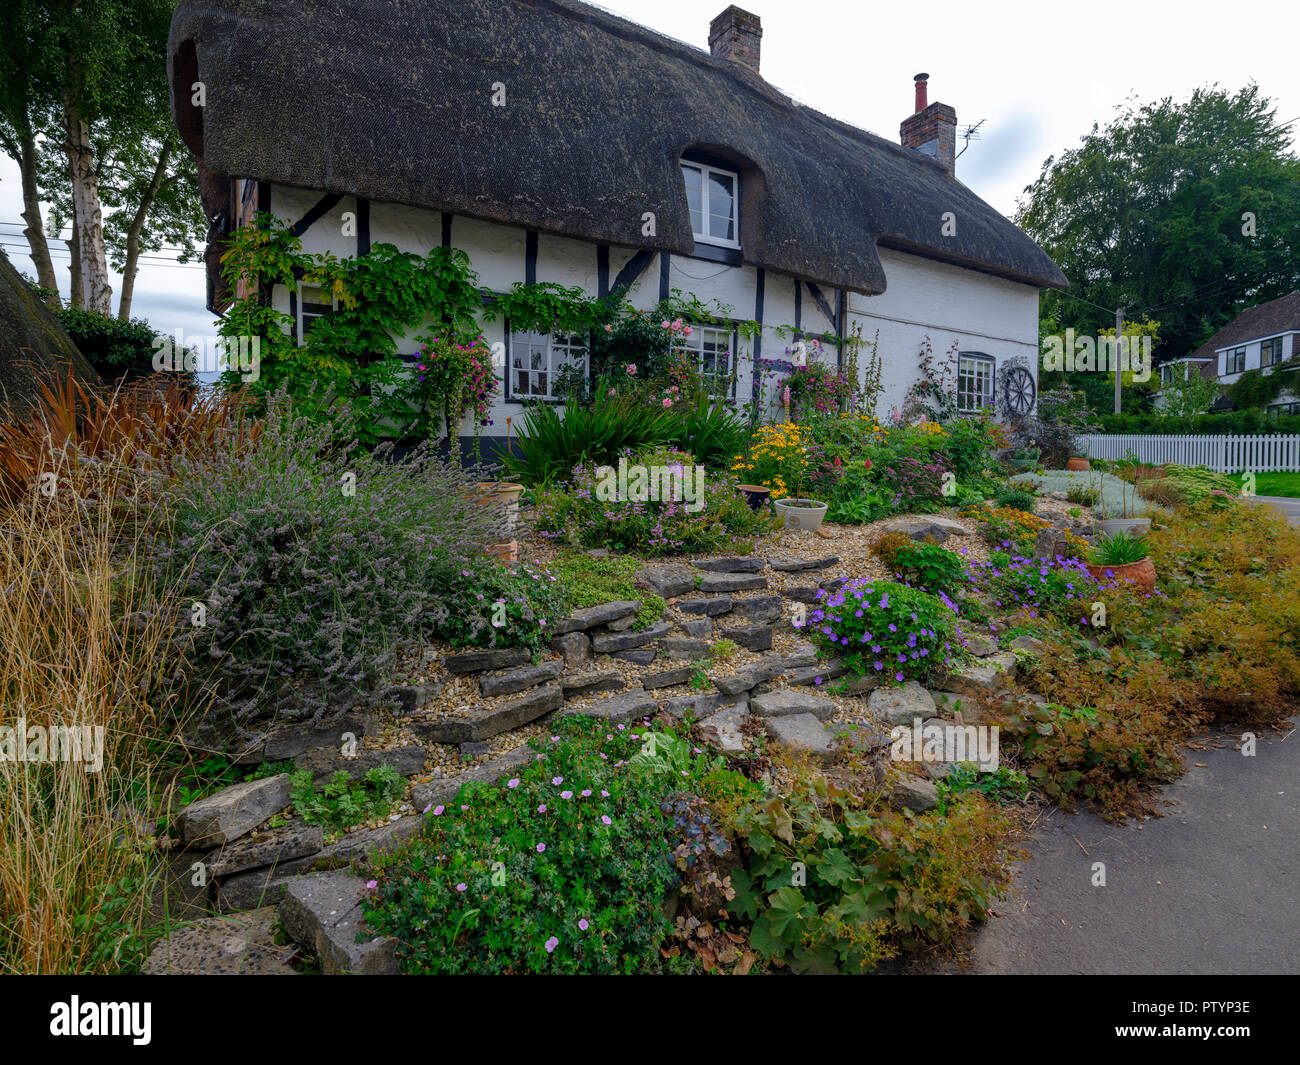 Typical Hampshire country cottage - half timbered and thatched - with pretty front garden in the village of Easton near Winchester in the South Downs  - Stock Image